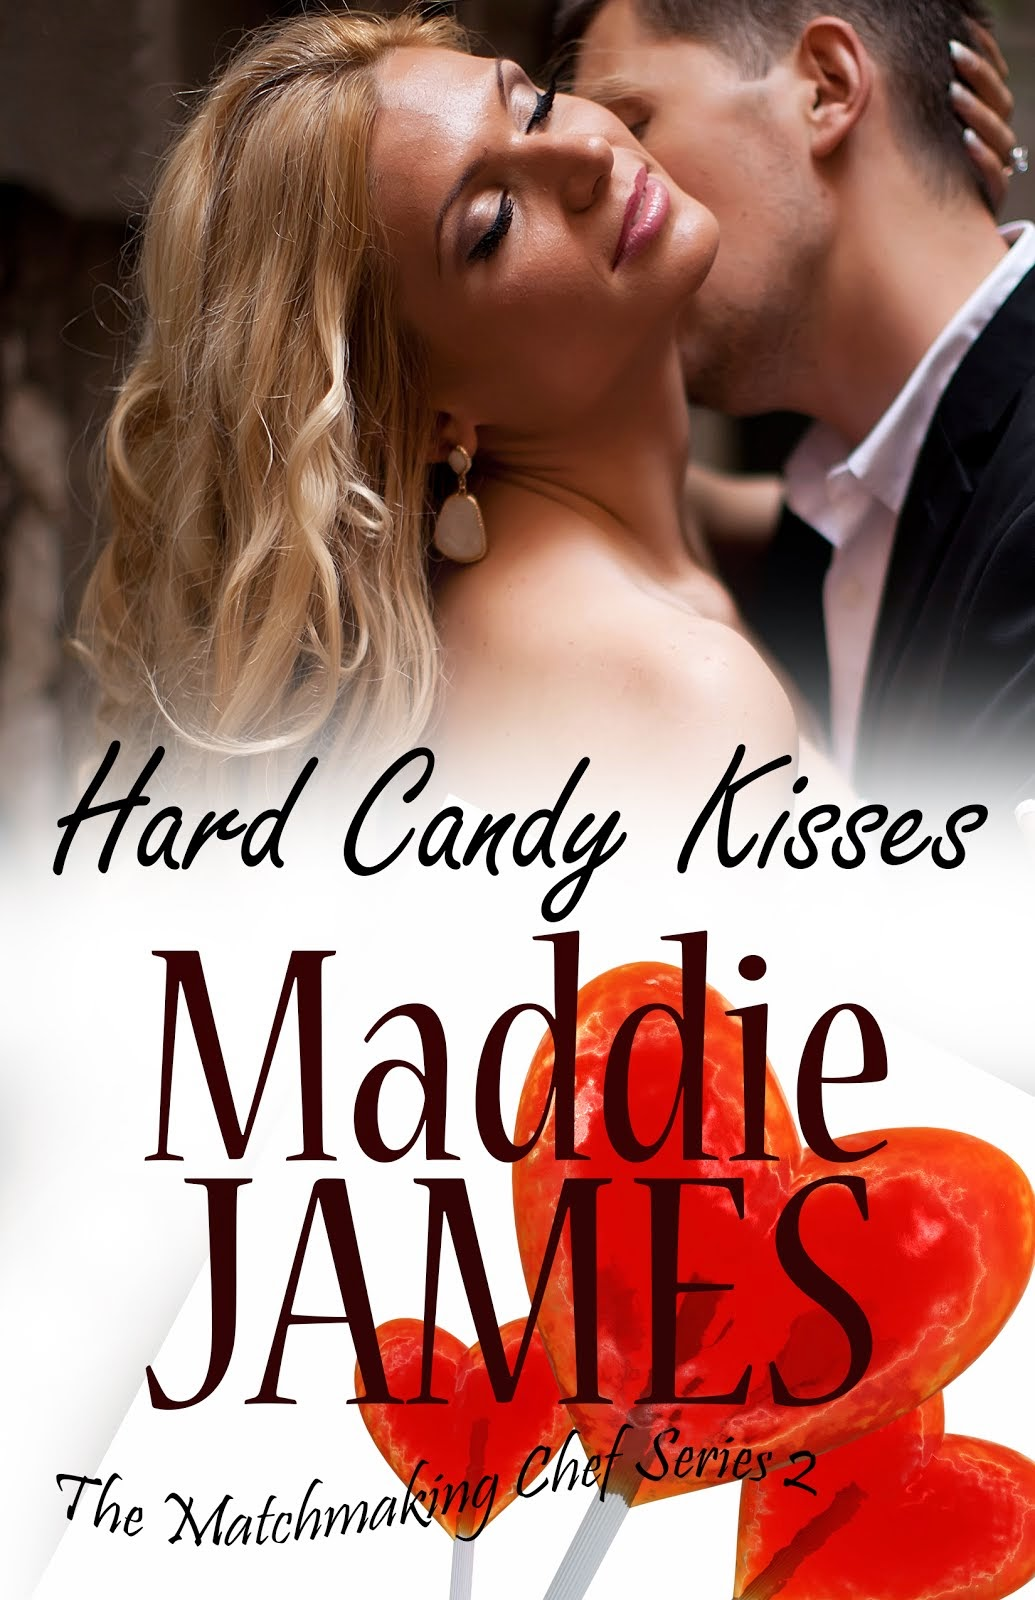 Hard Candy Kisses